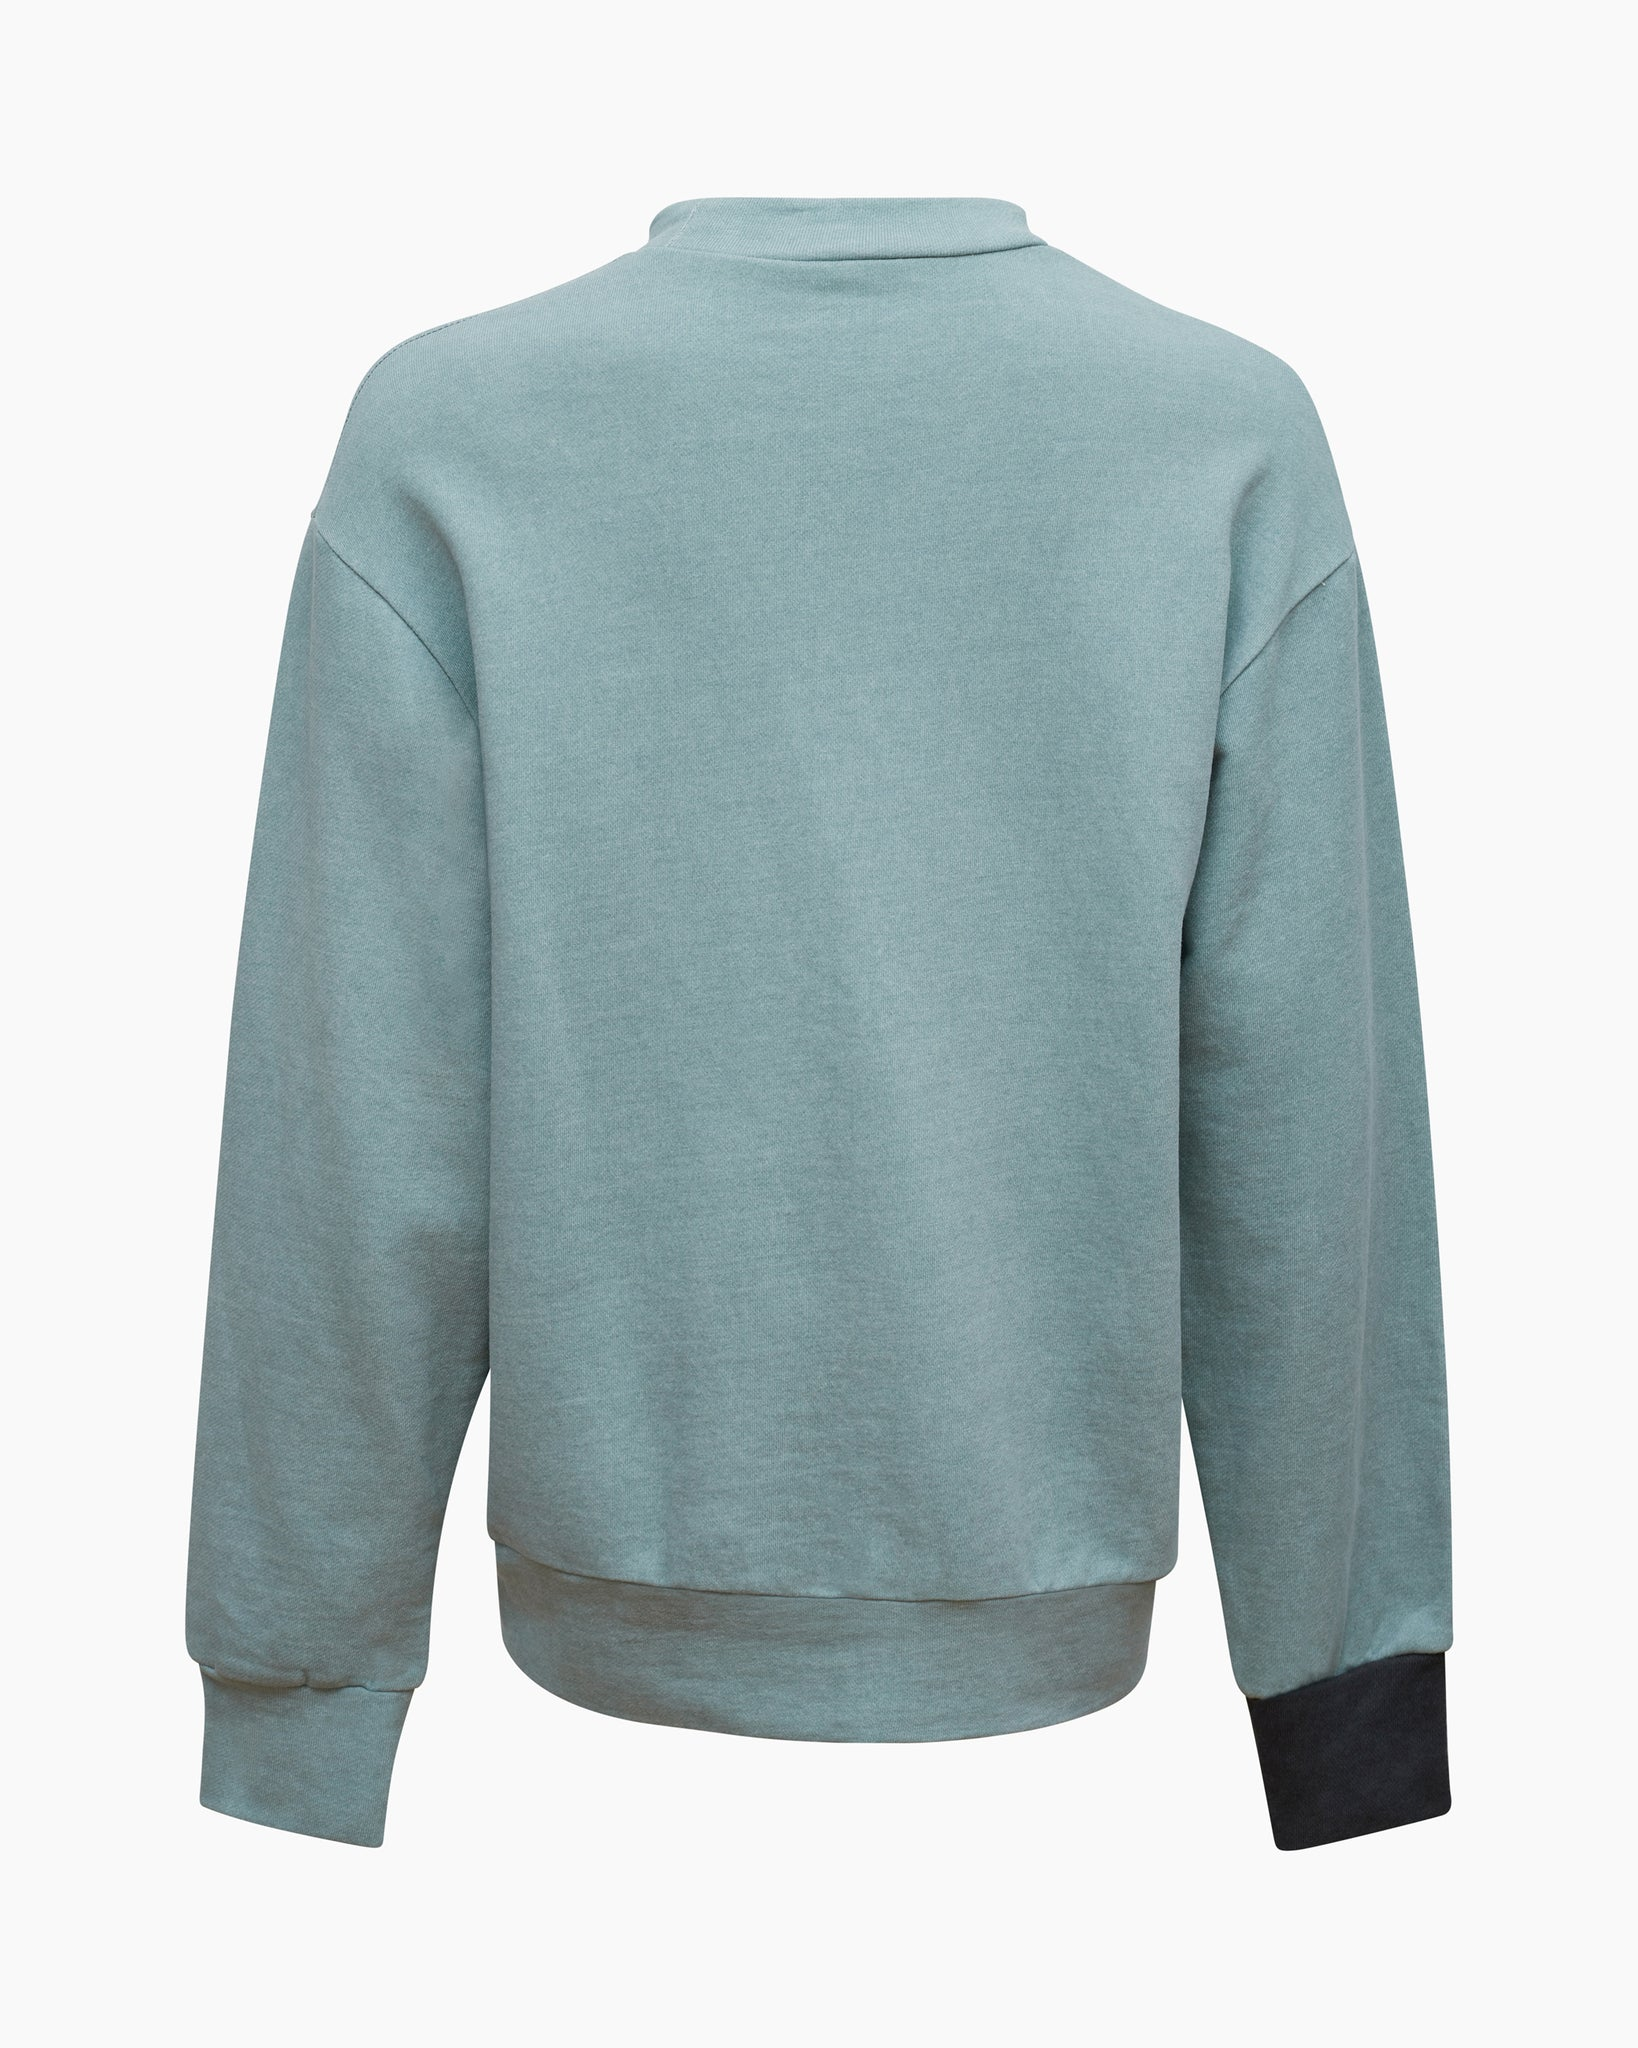 Drew Sweatshirt Cotton Sweatshirt Mint Mix  - UNISEX